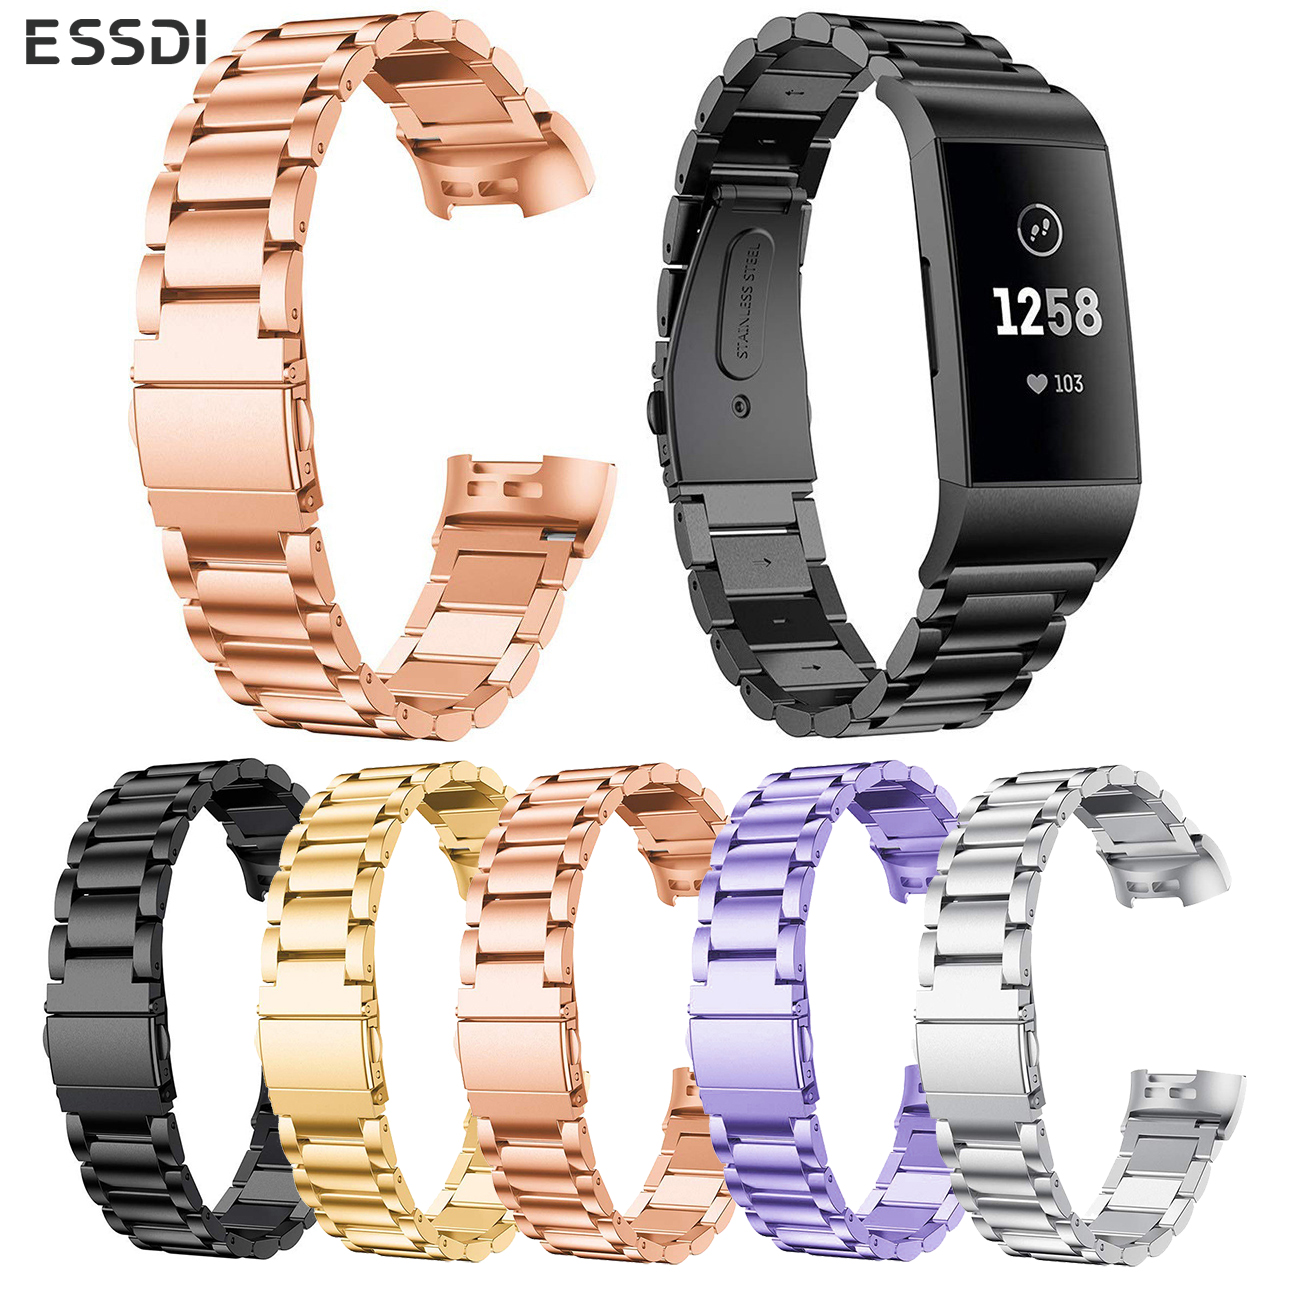 Essidi Stainless Steel Bracelet Strap For Fitbit Charge 3 4 Smart Wristband Loop Replacement For Charge 3 4 Metal Band Strap 1